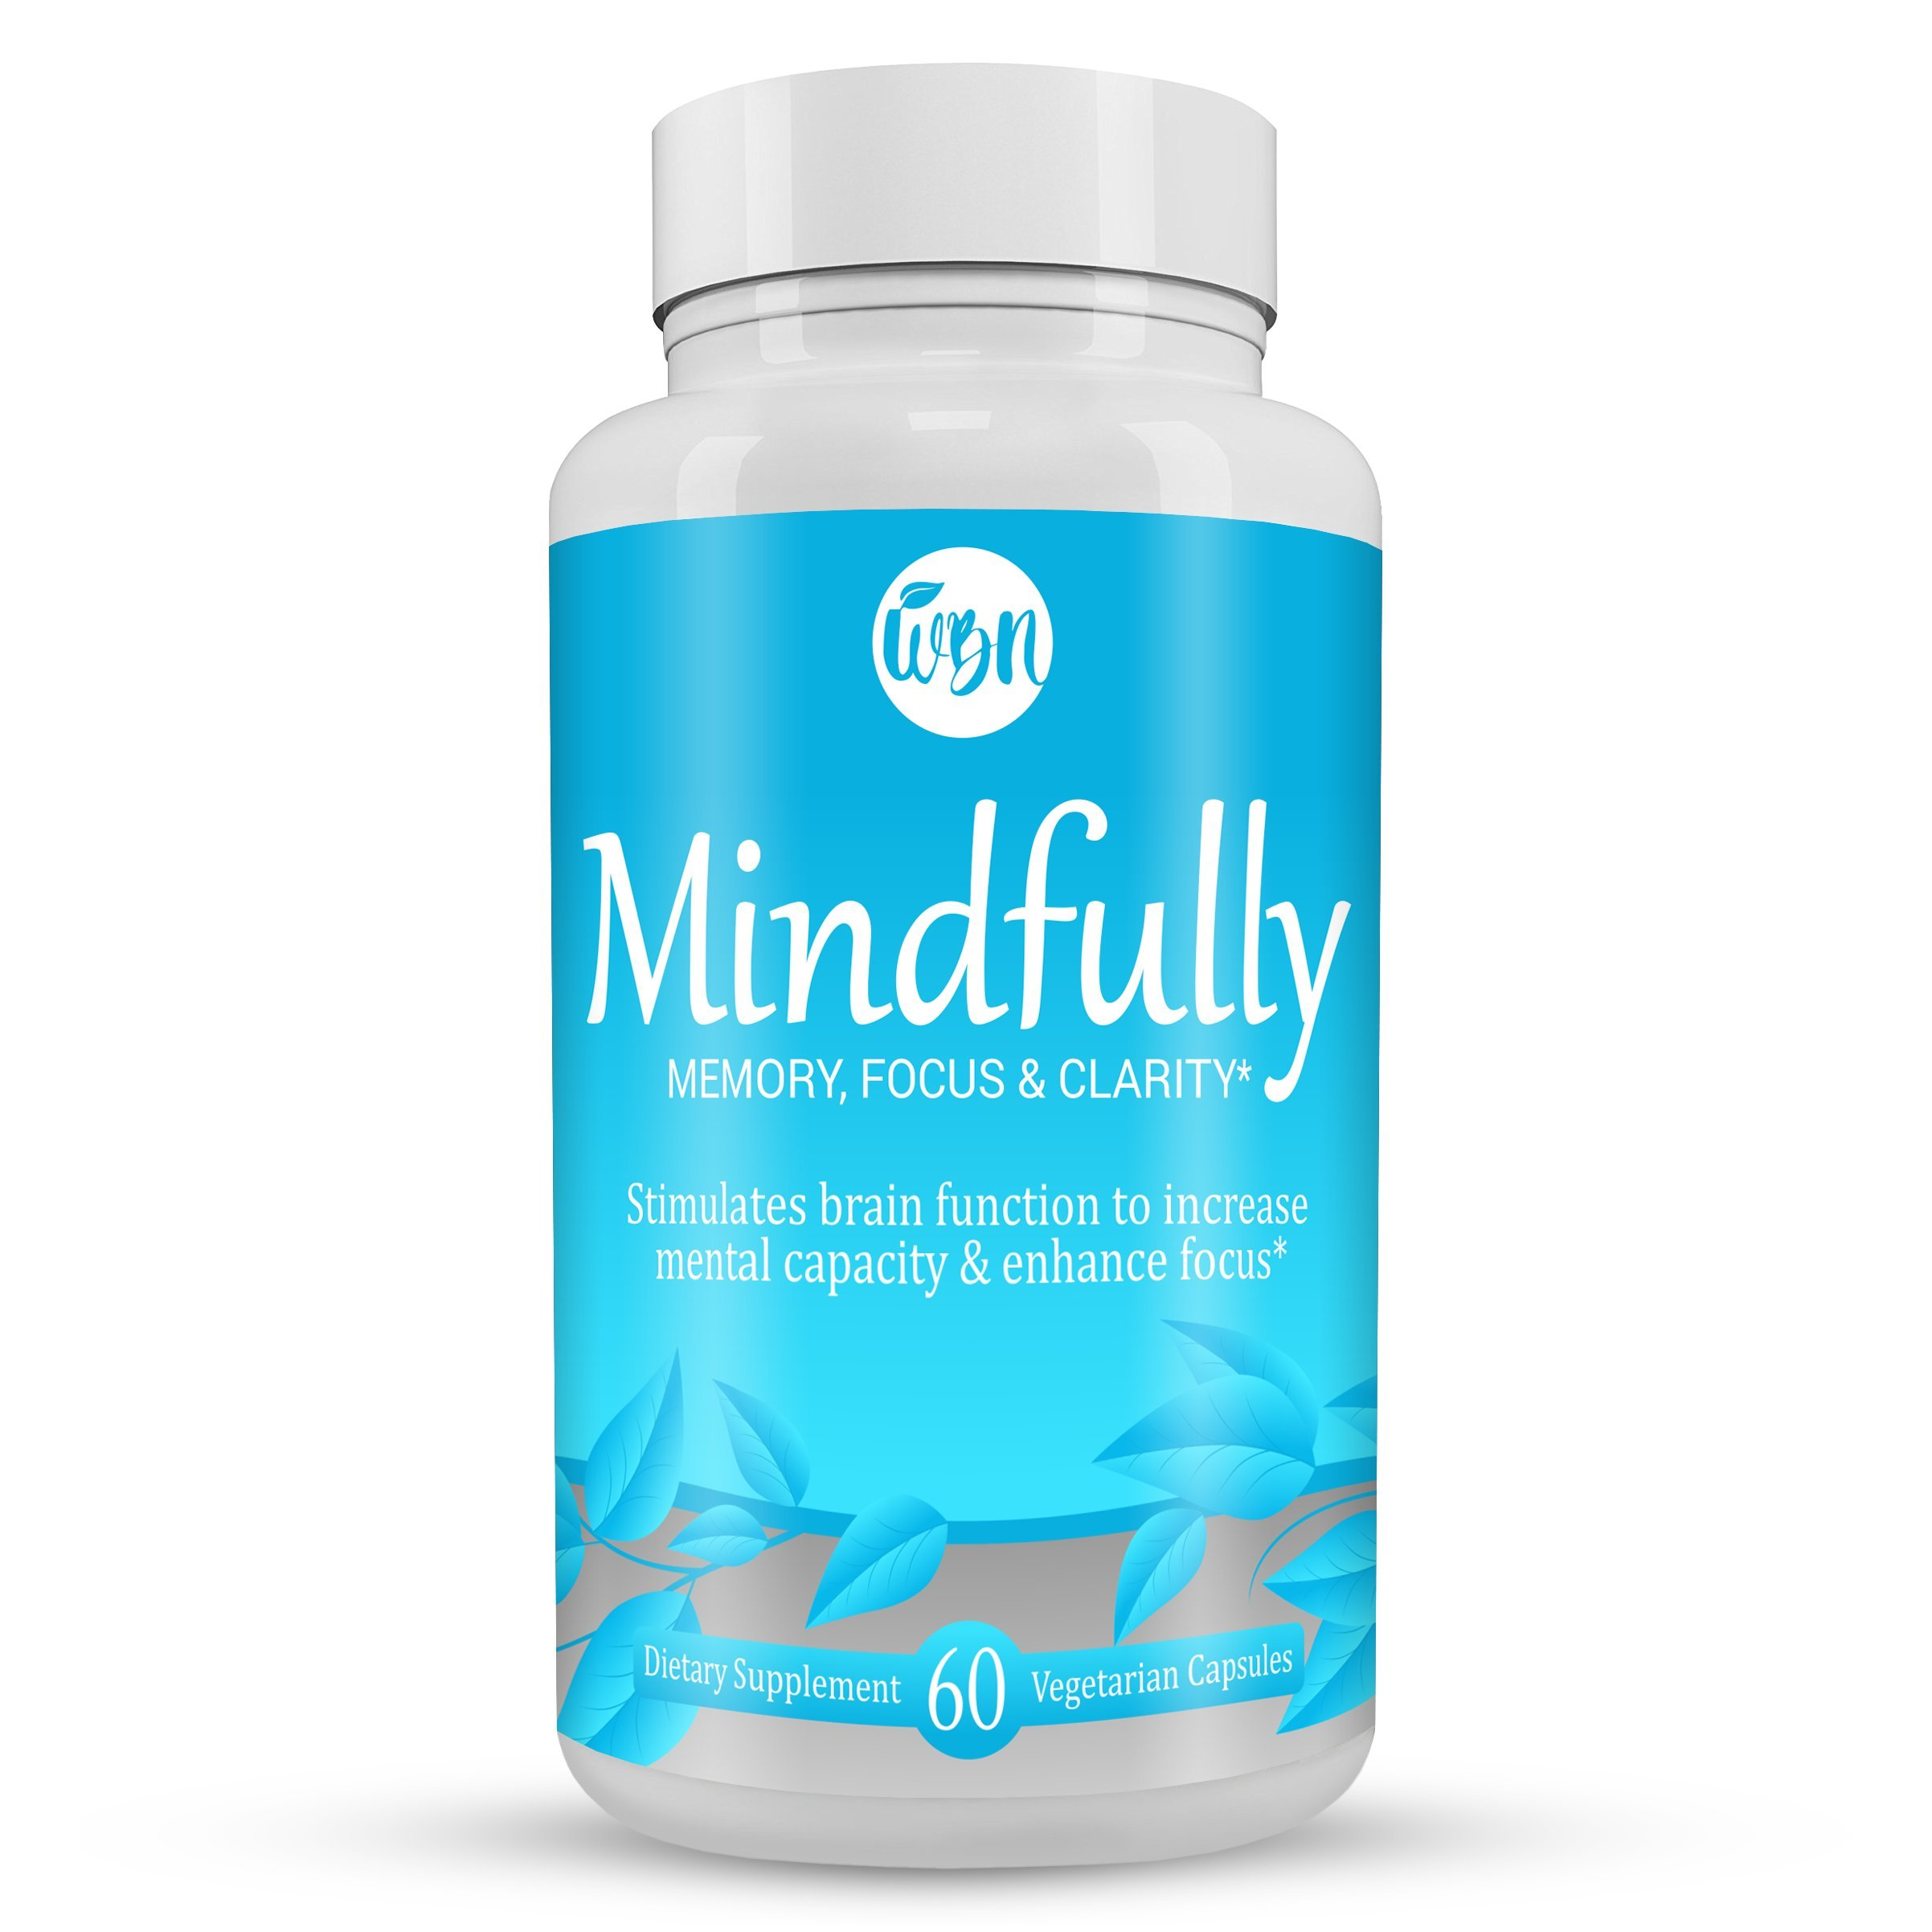 MINDFULLY Natural Nootropic - Citicoline, Lion's Mane, Bacopa Monnieri & Ginkgo Biloba Herbal Blend to Support Memory, Focus & Cognitive Brain Function - 60 Vegetarian Capsules